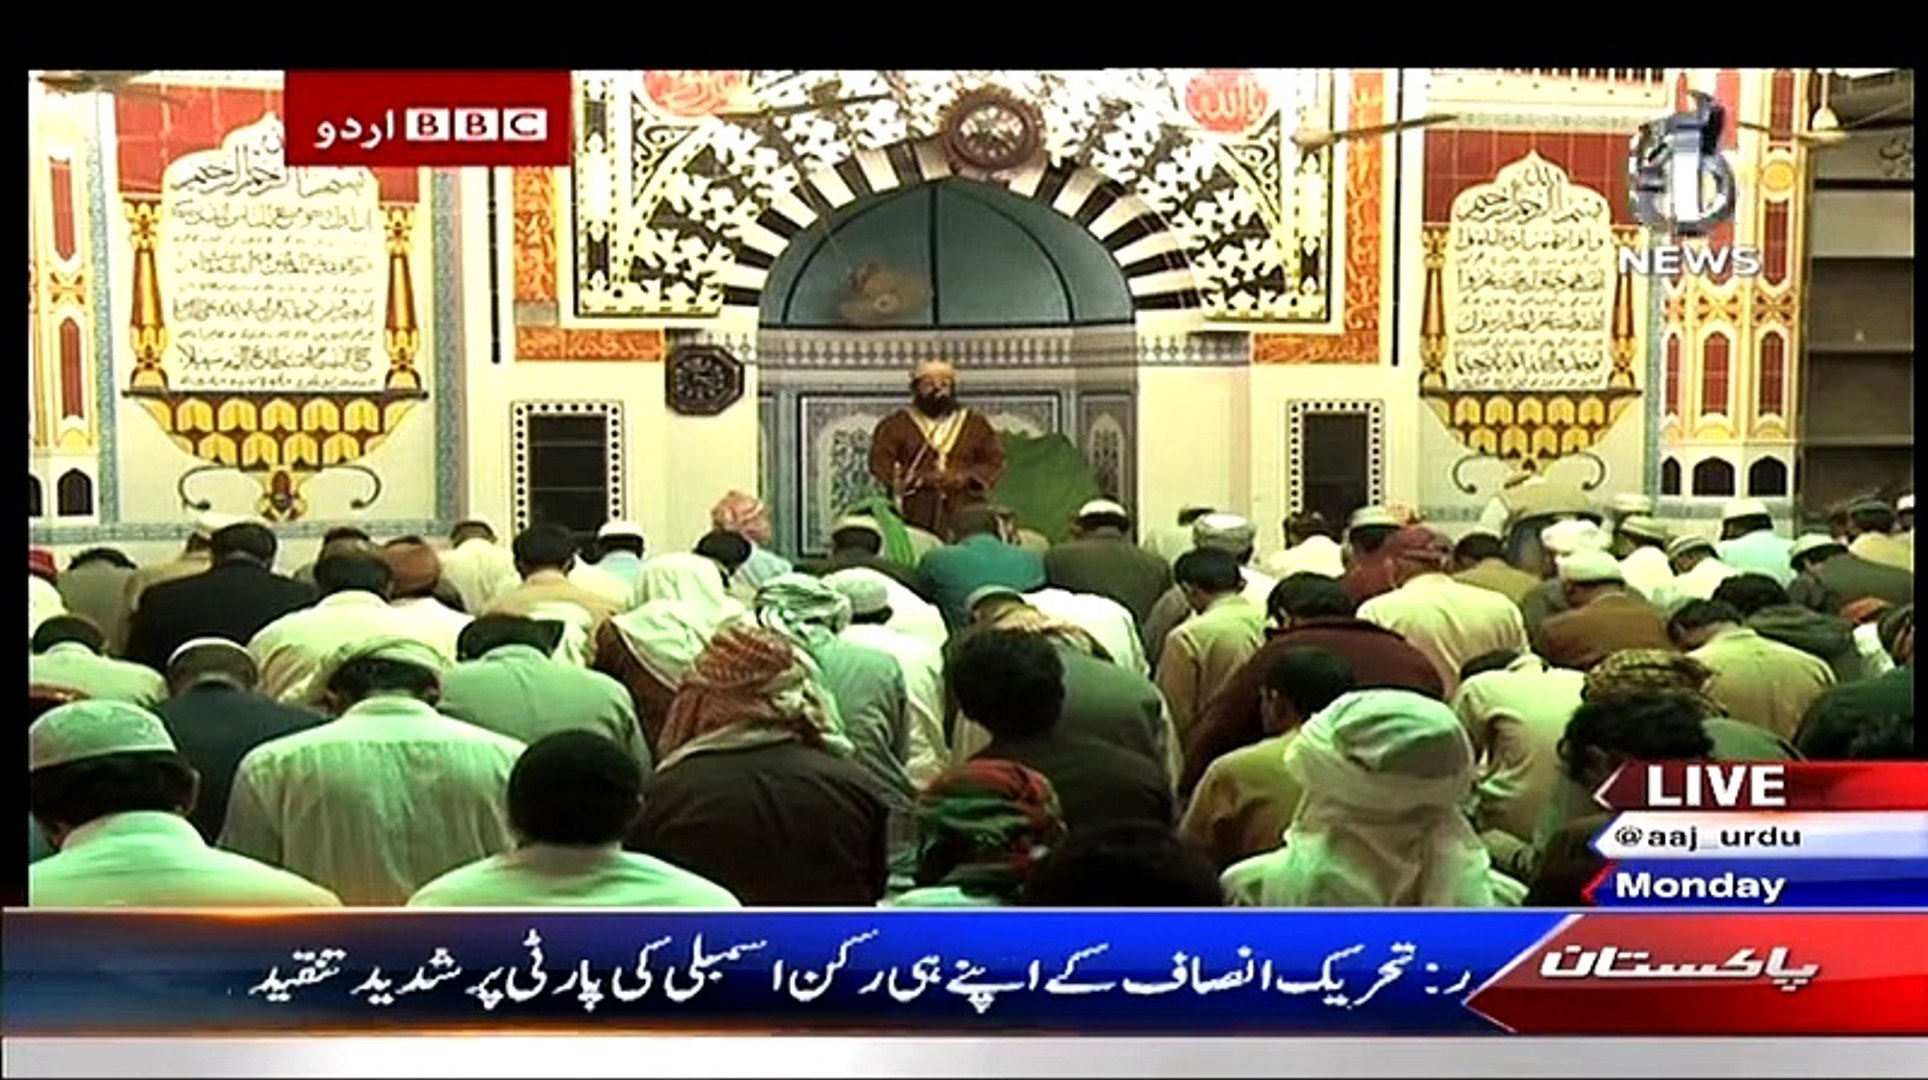 BBC Urdu Sairbeen On Aaj News – 16th February 2015 - Live Pak News